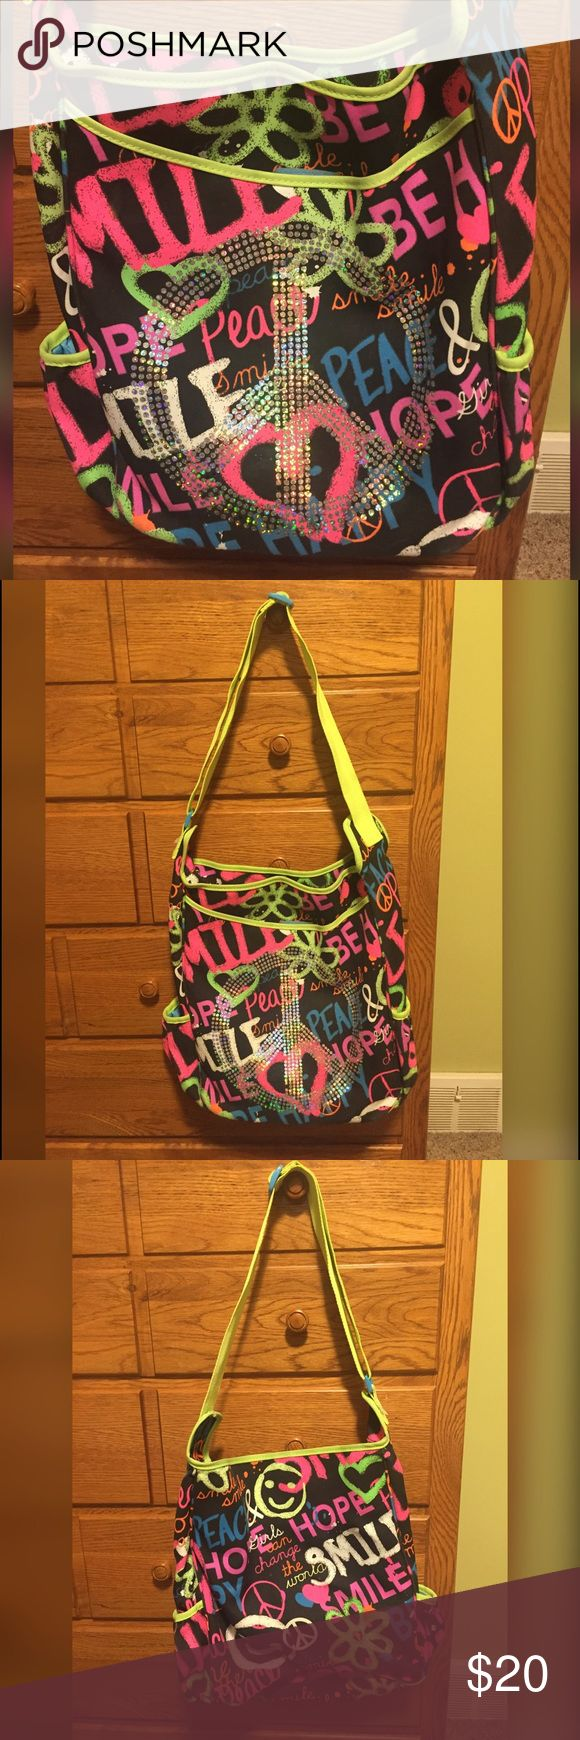 Justice Neon Graffiti Peace Bag Justice Neon Graffiti Peace Bag - Gently used - great for back to school - an overnight or just to tote things around. Has two side pockets, a front pocket that velcros and has a zipper closure on top. Justice Accessories Bags